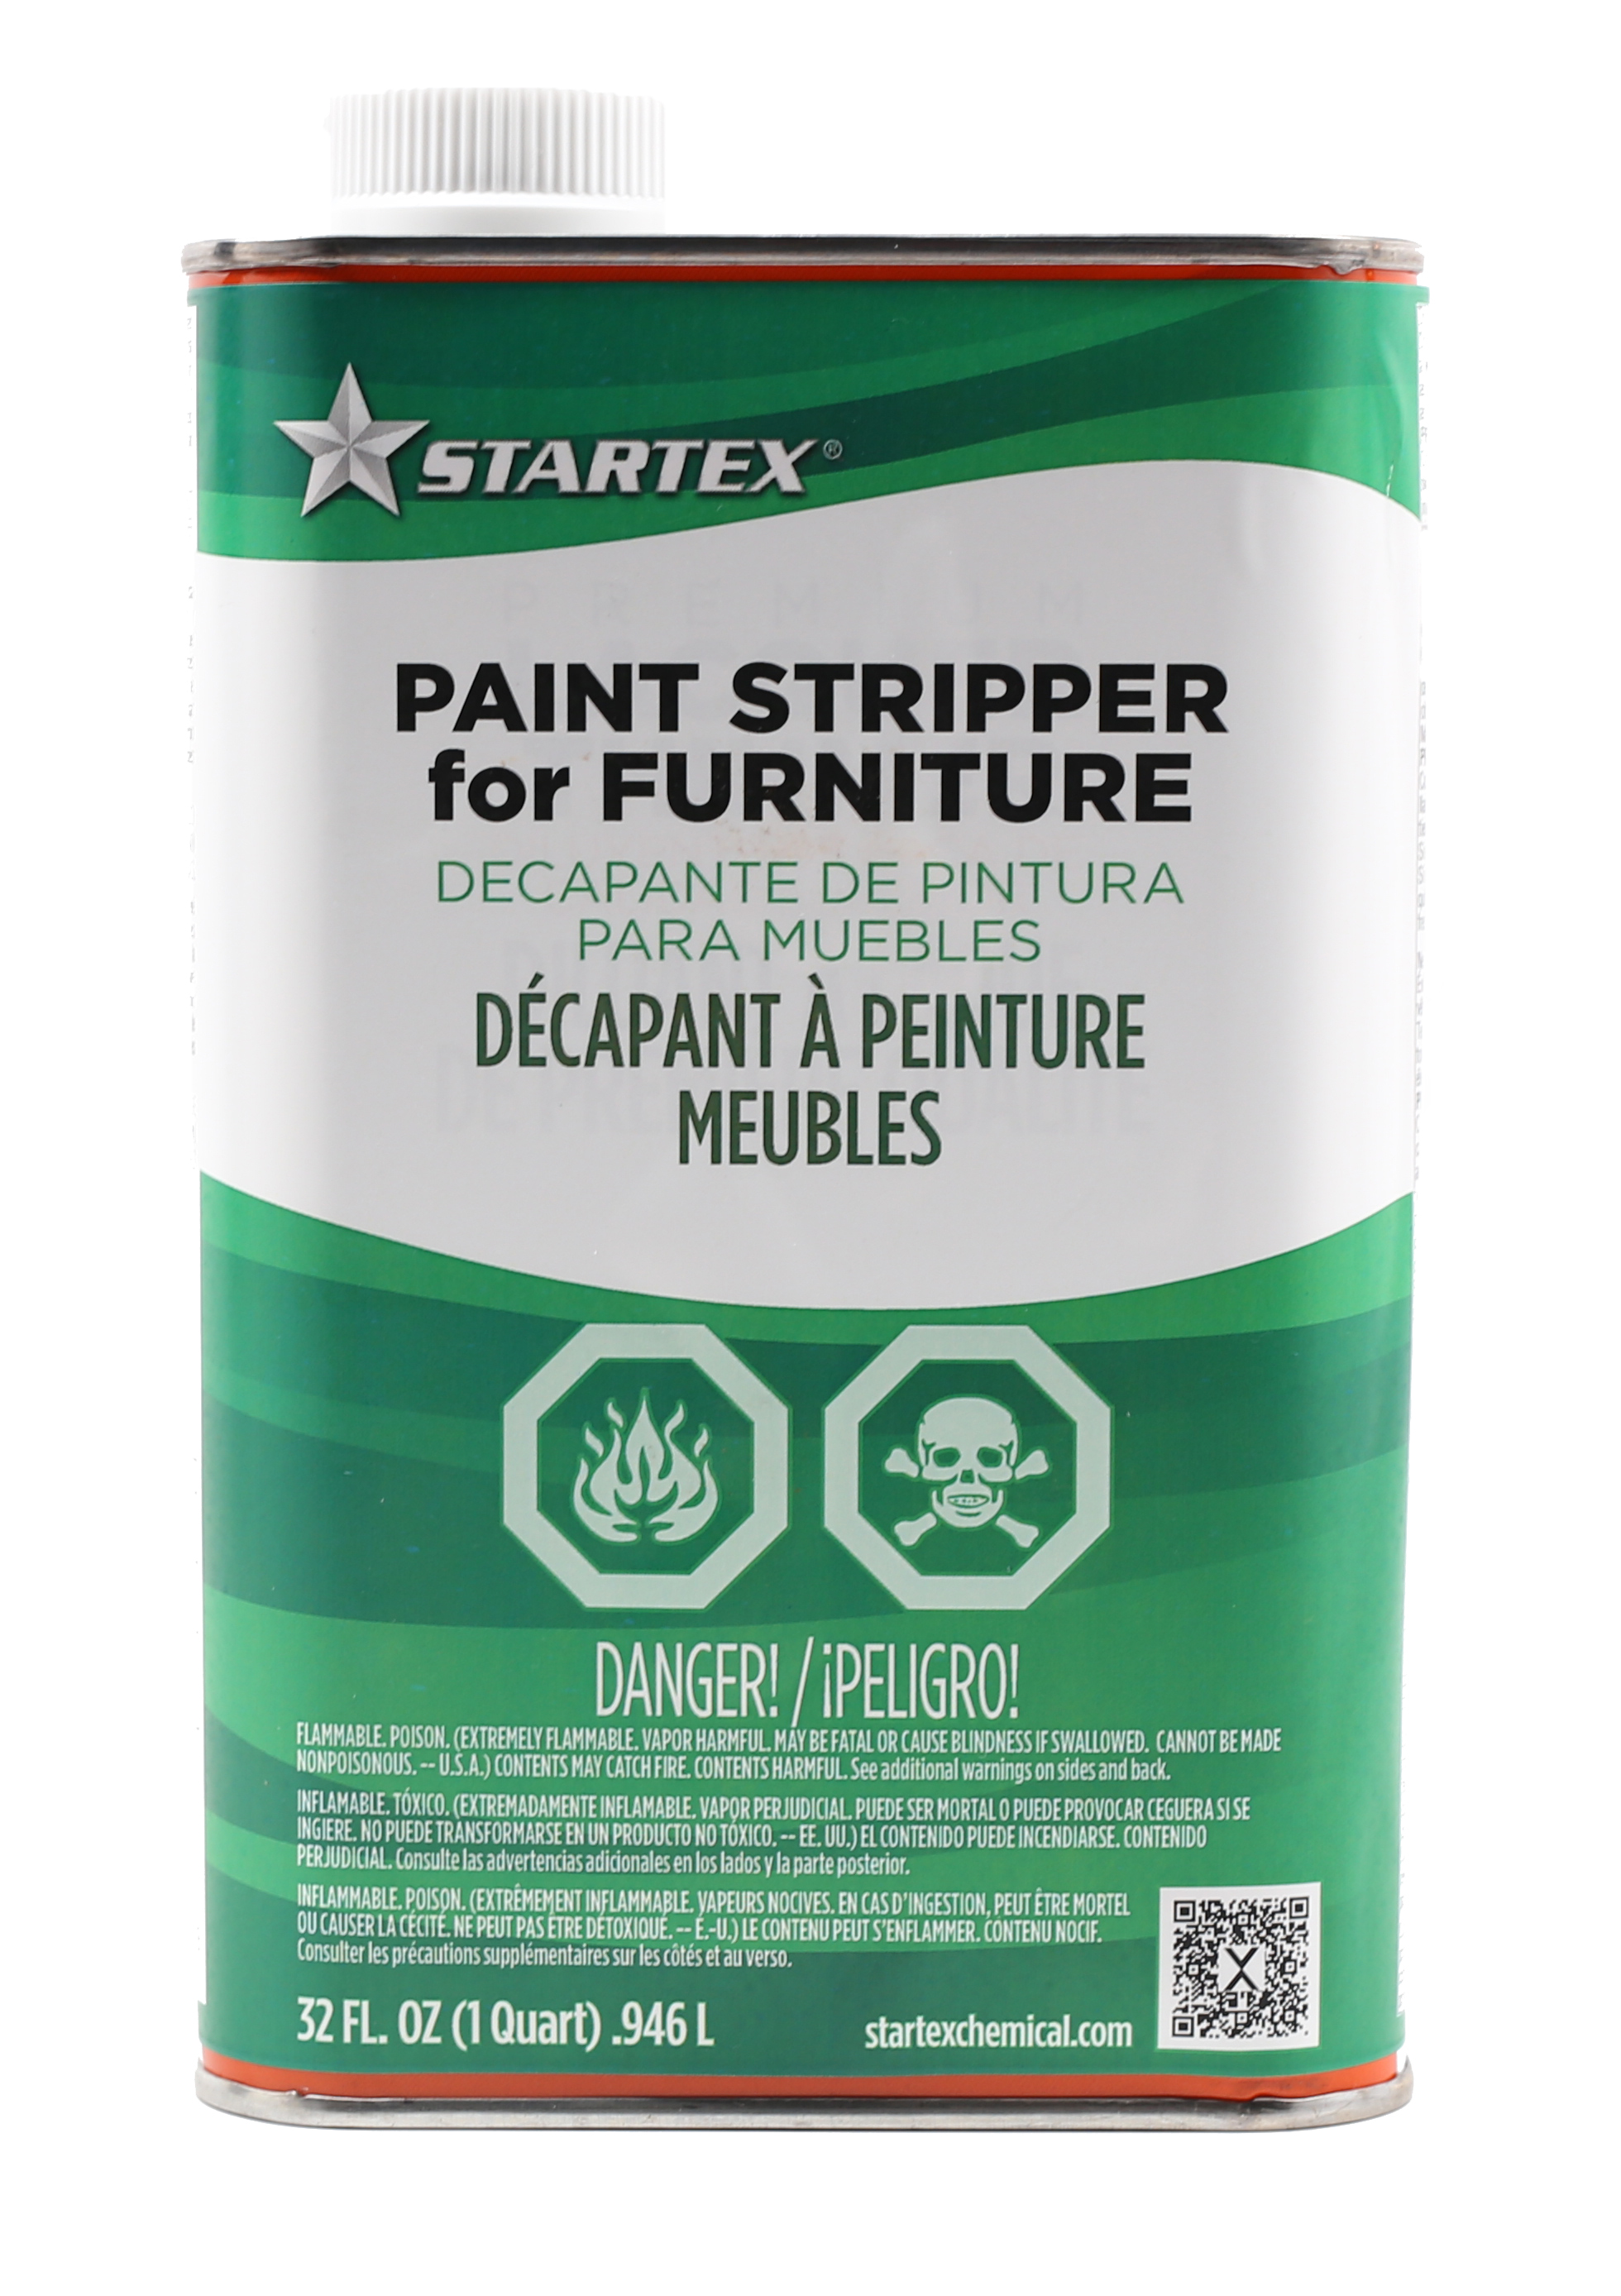 Paint Stripper Paint Stripping Solvents For Furniture Chemical Paint Thinner